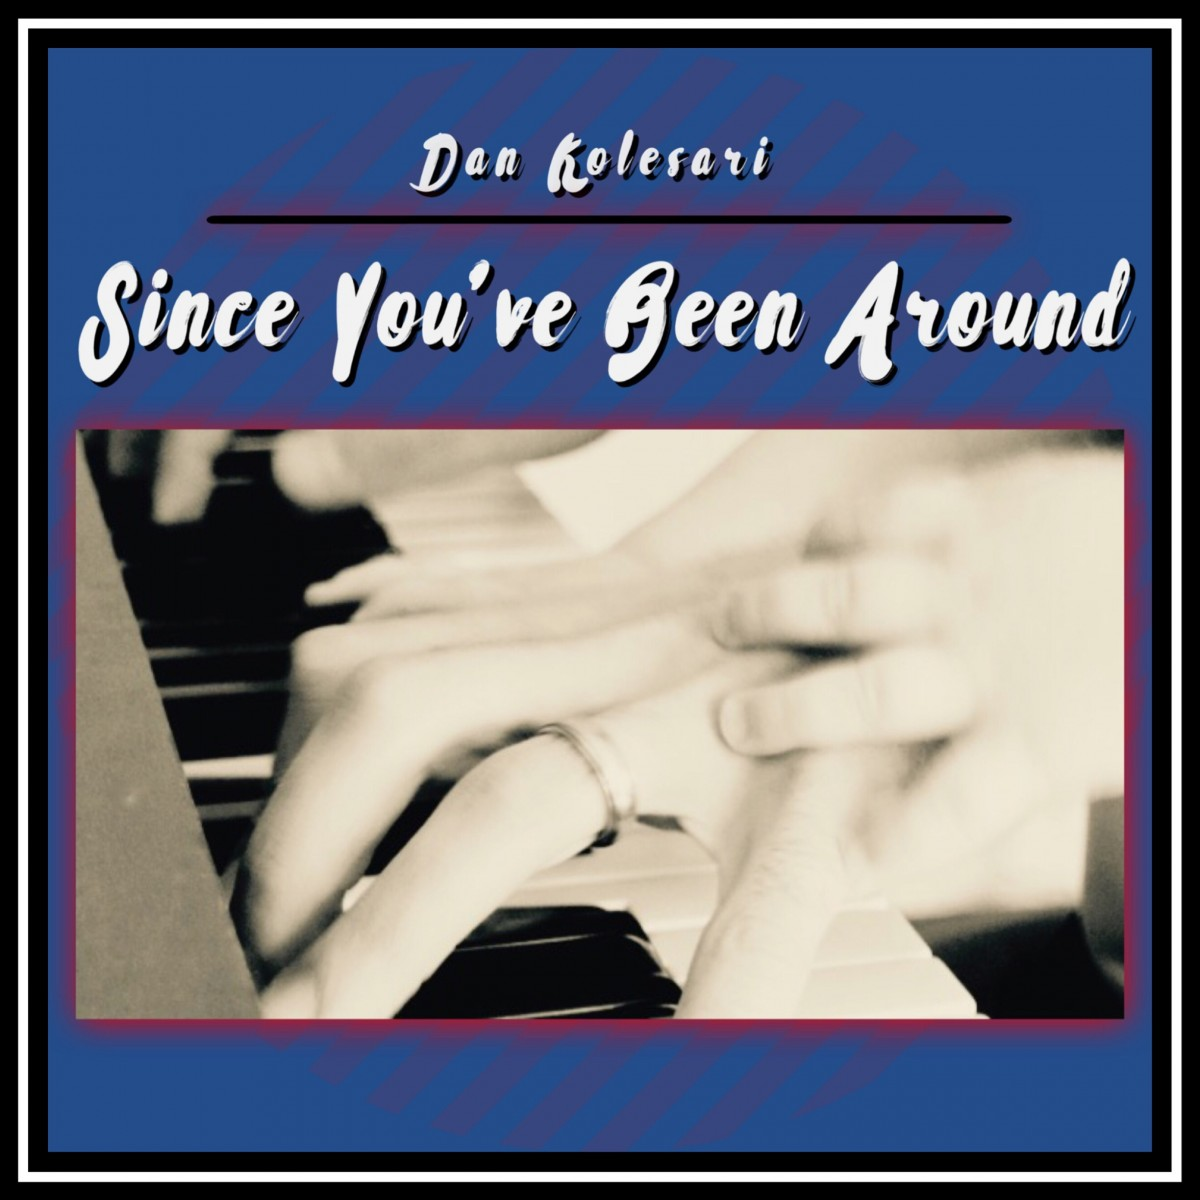 Dan Kolesari - Since You've Been Around